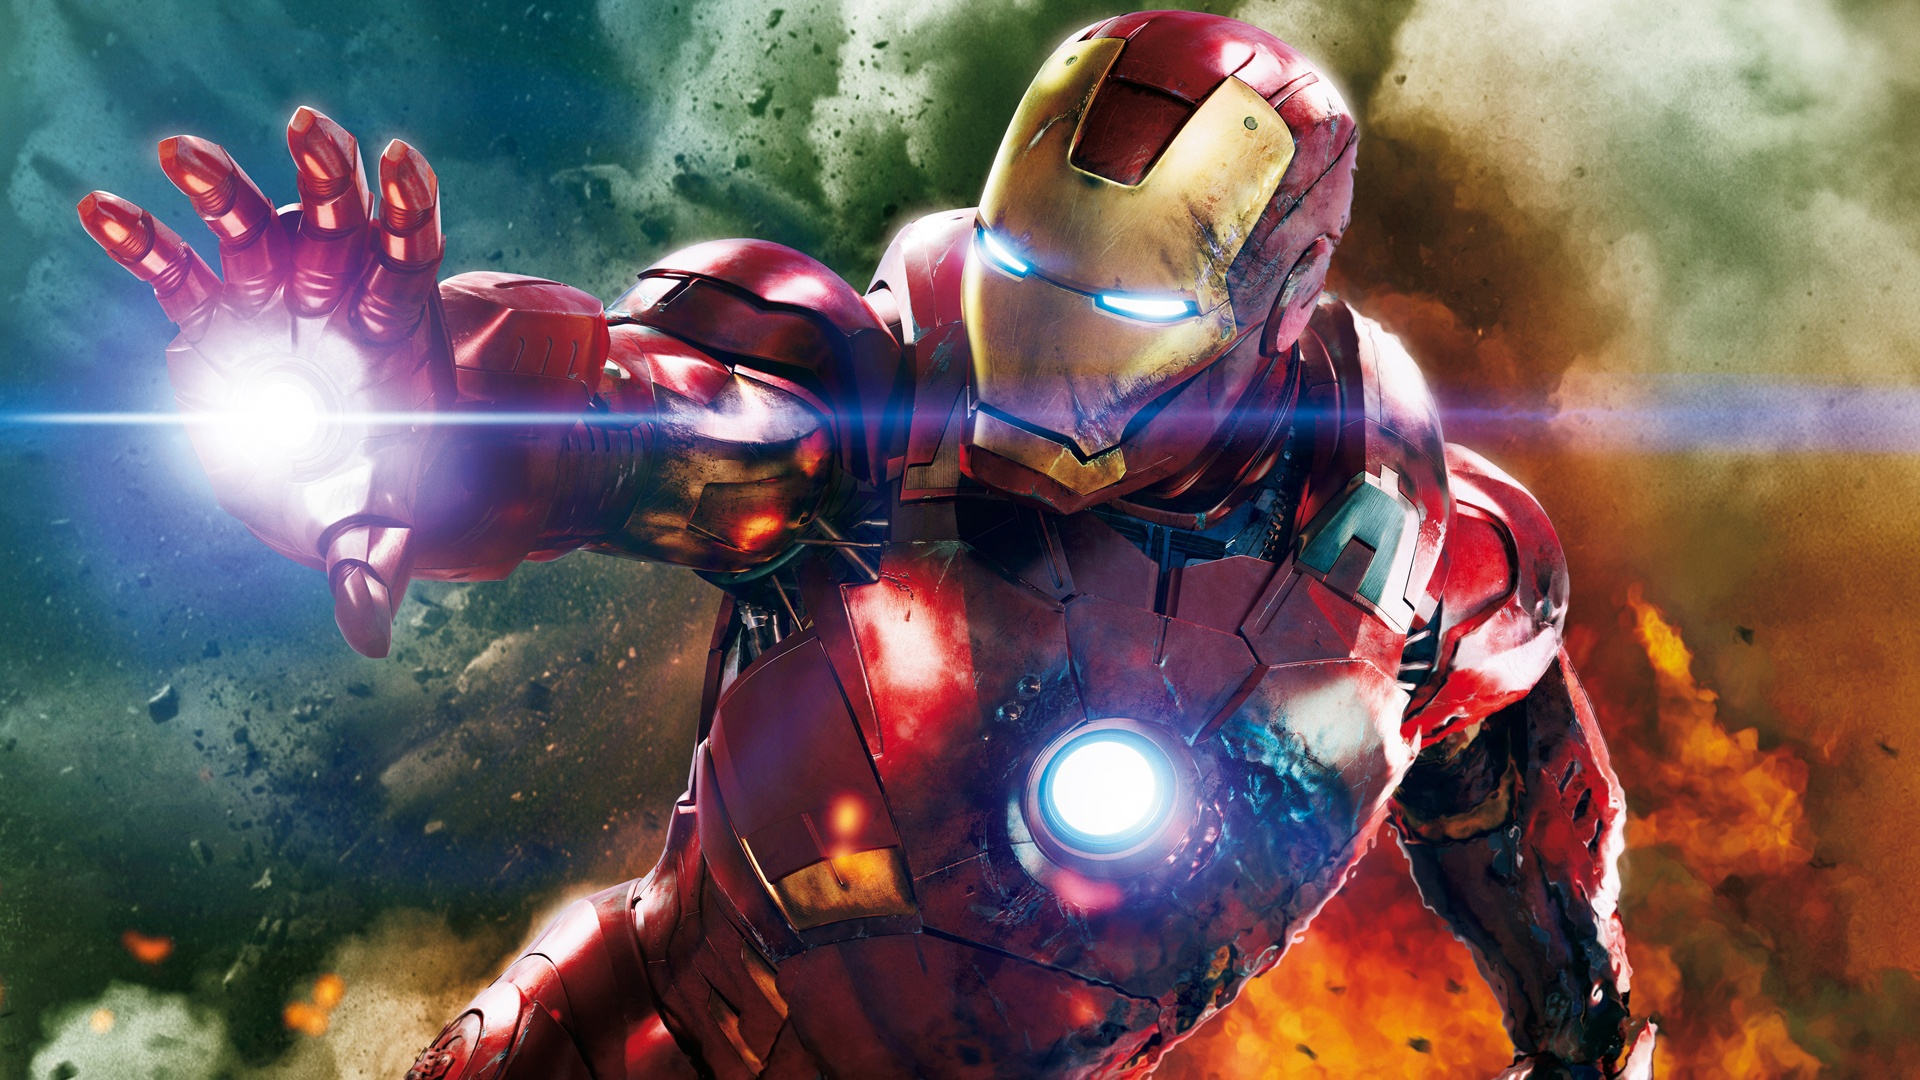 46 Iron Man Wallpapers Hd On Wallpapersafari